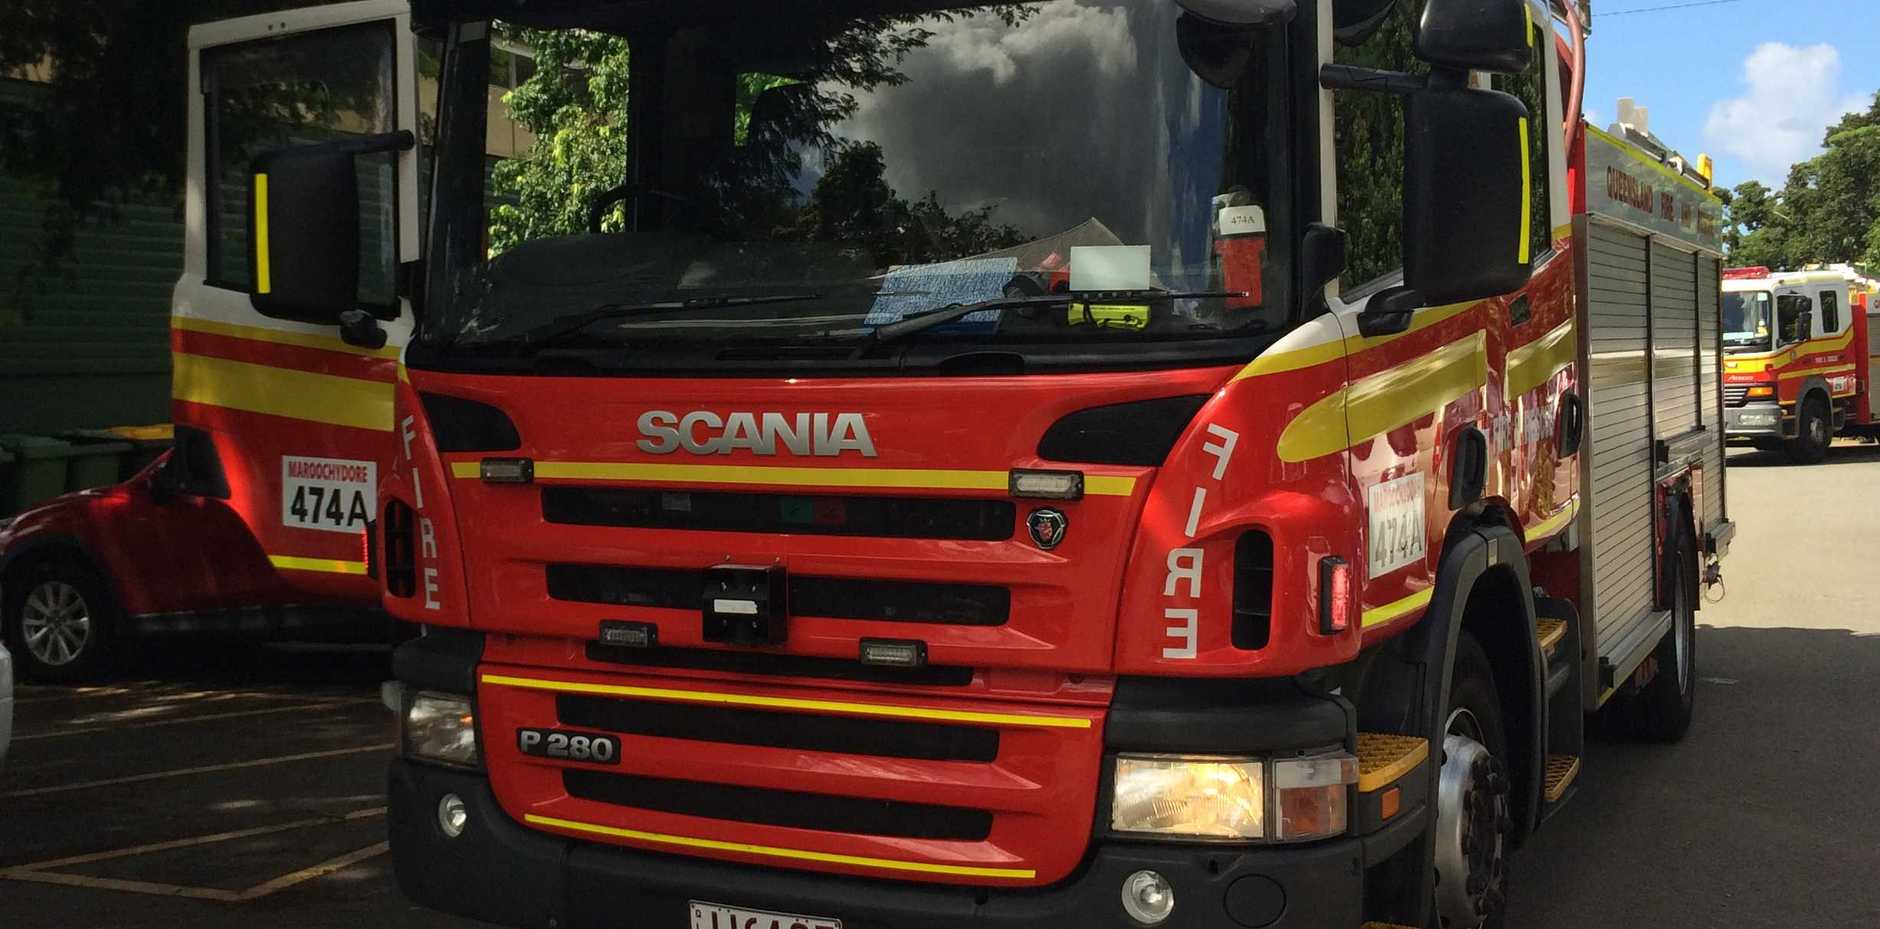 The fire reportedly broke out inside the bathroom at the Fraser Rd home just after 6am.